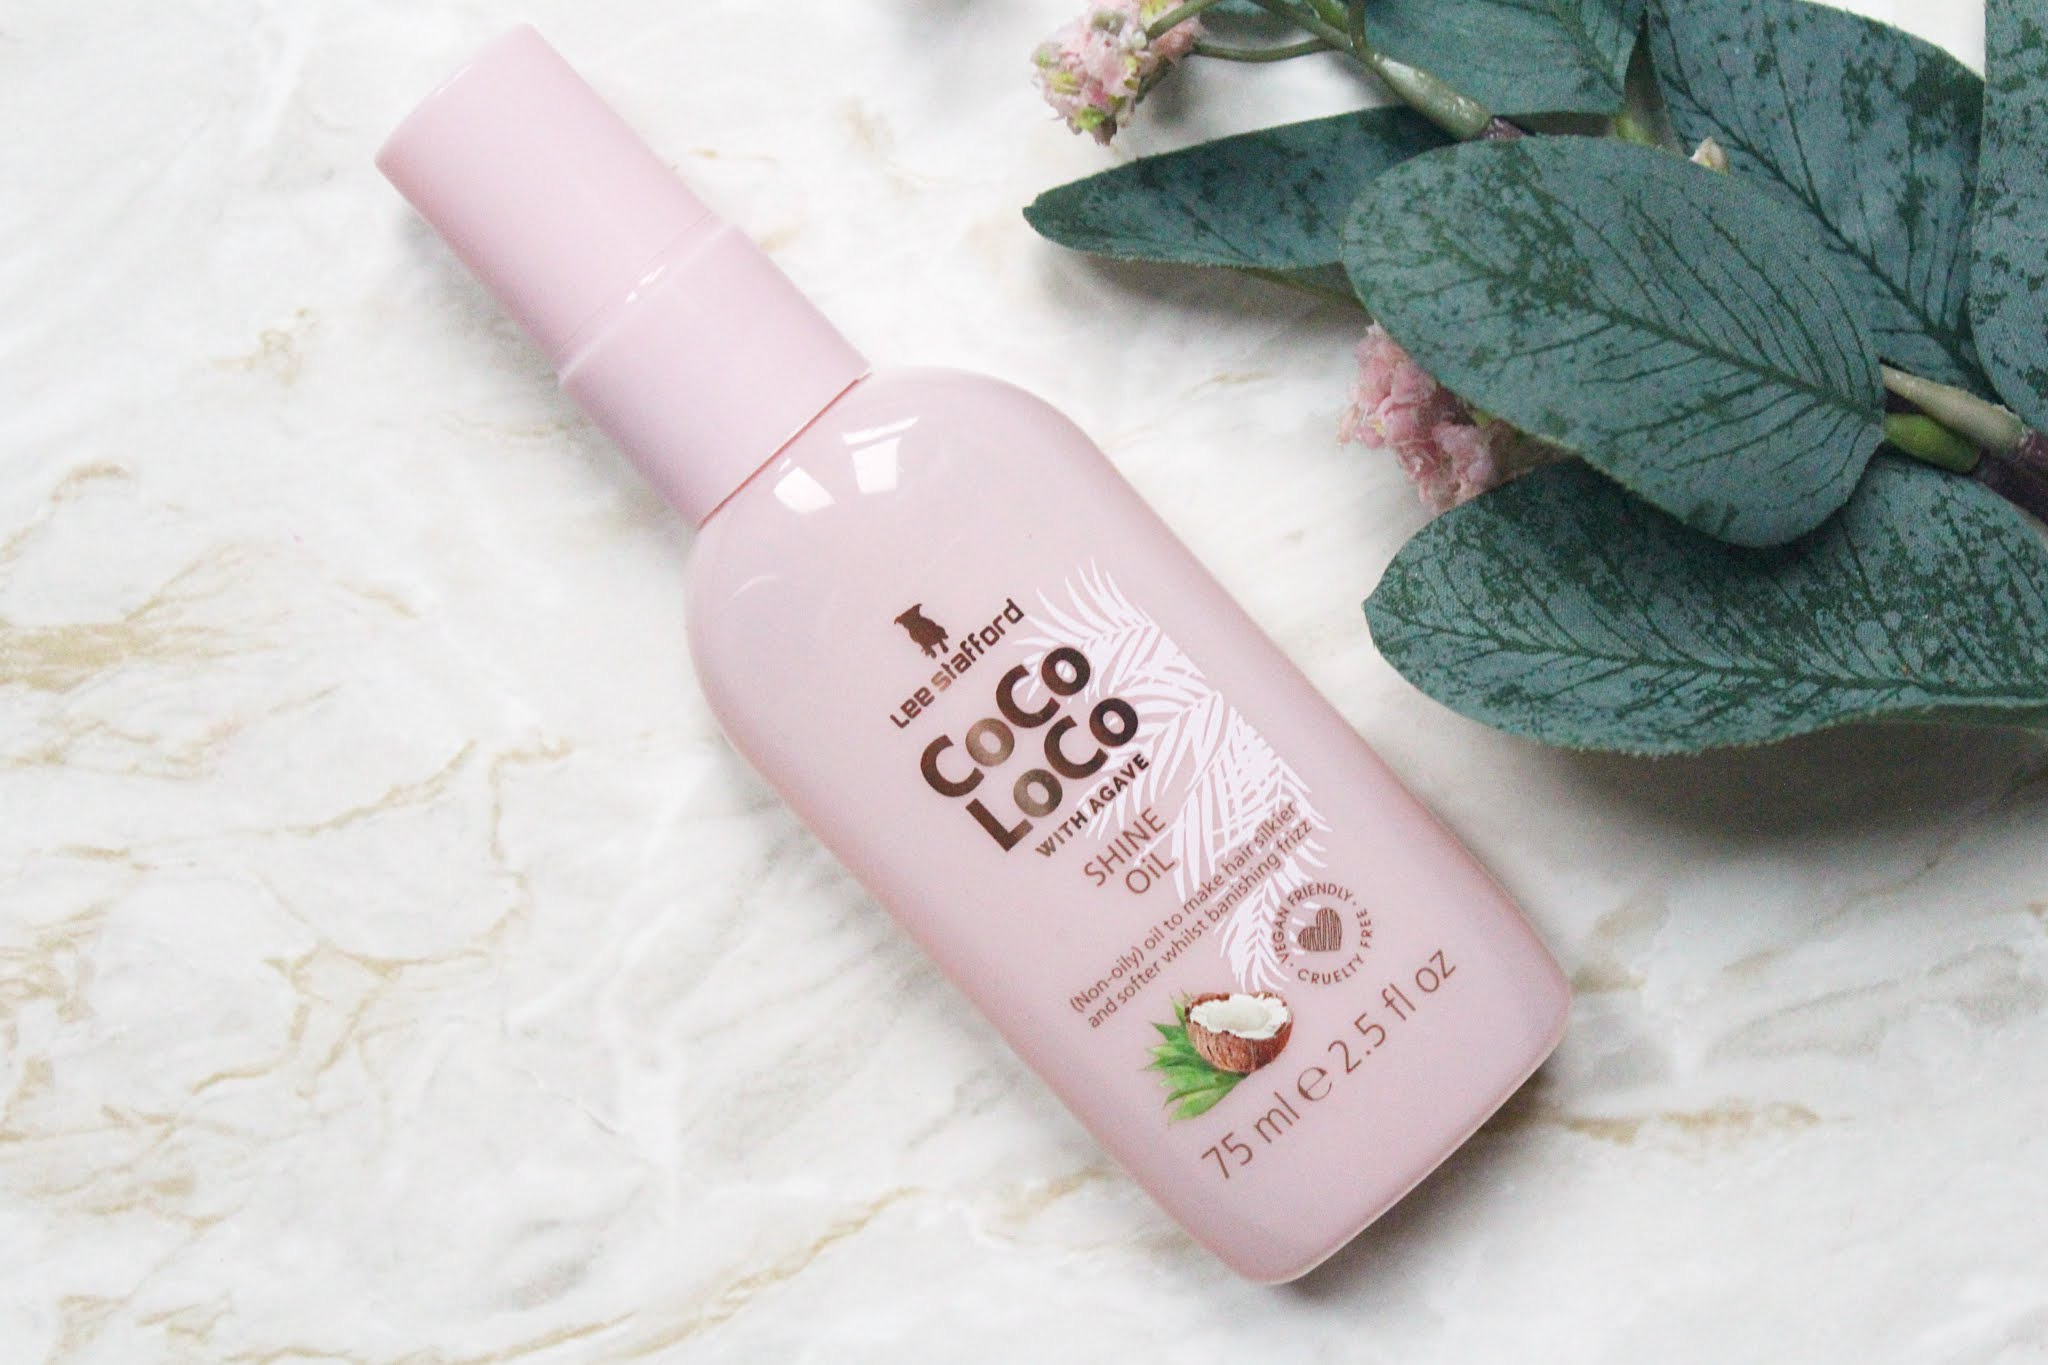 Lee Stafford Coco Loco With Agave Shine Oil Review